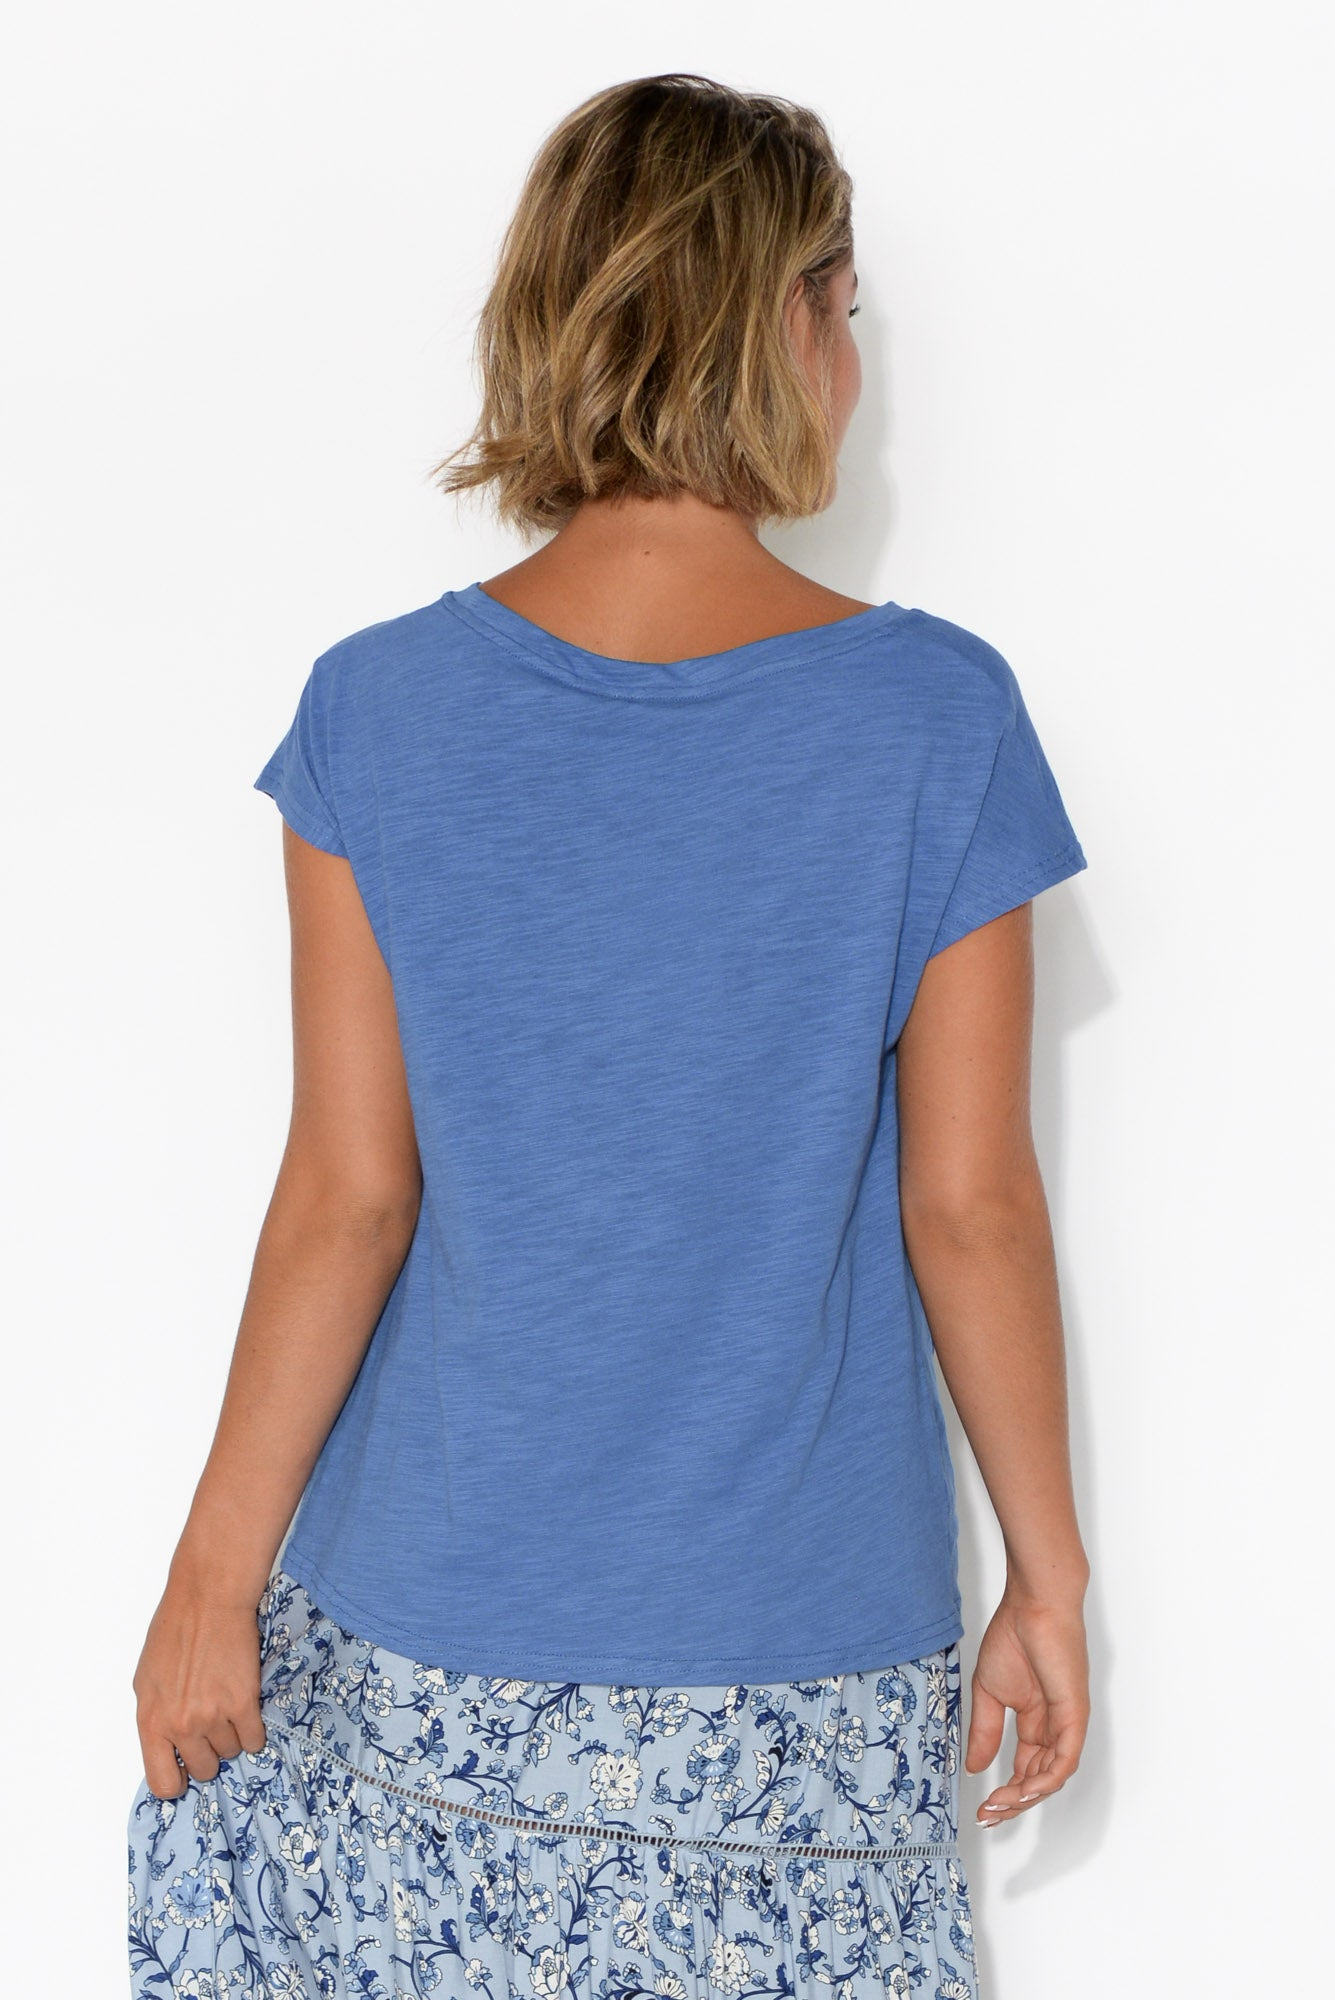 Blue Cotton Slub Twist Tee